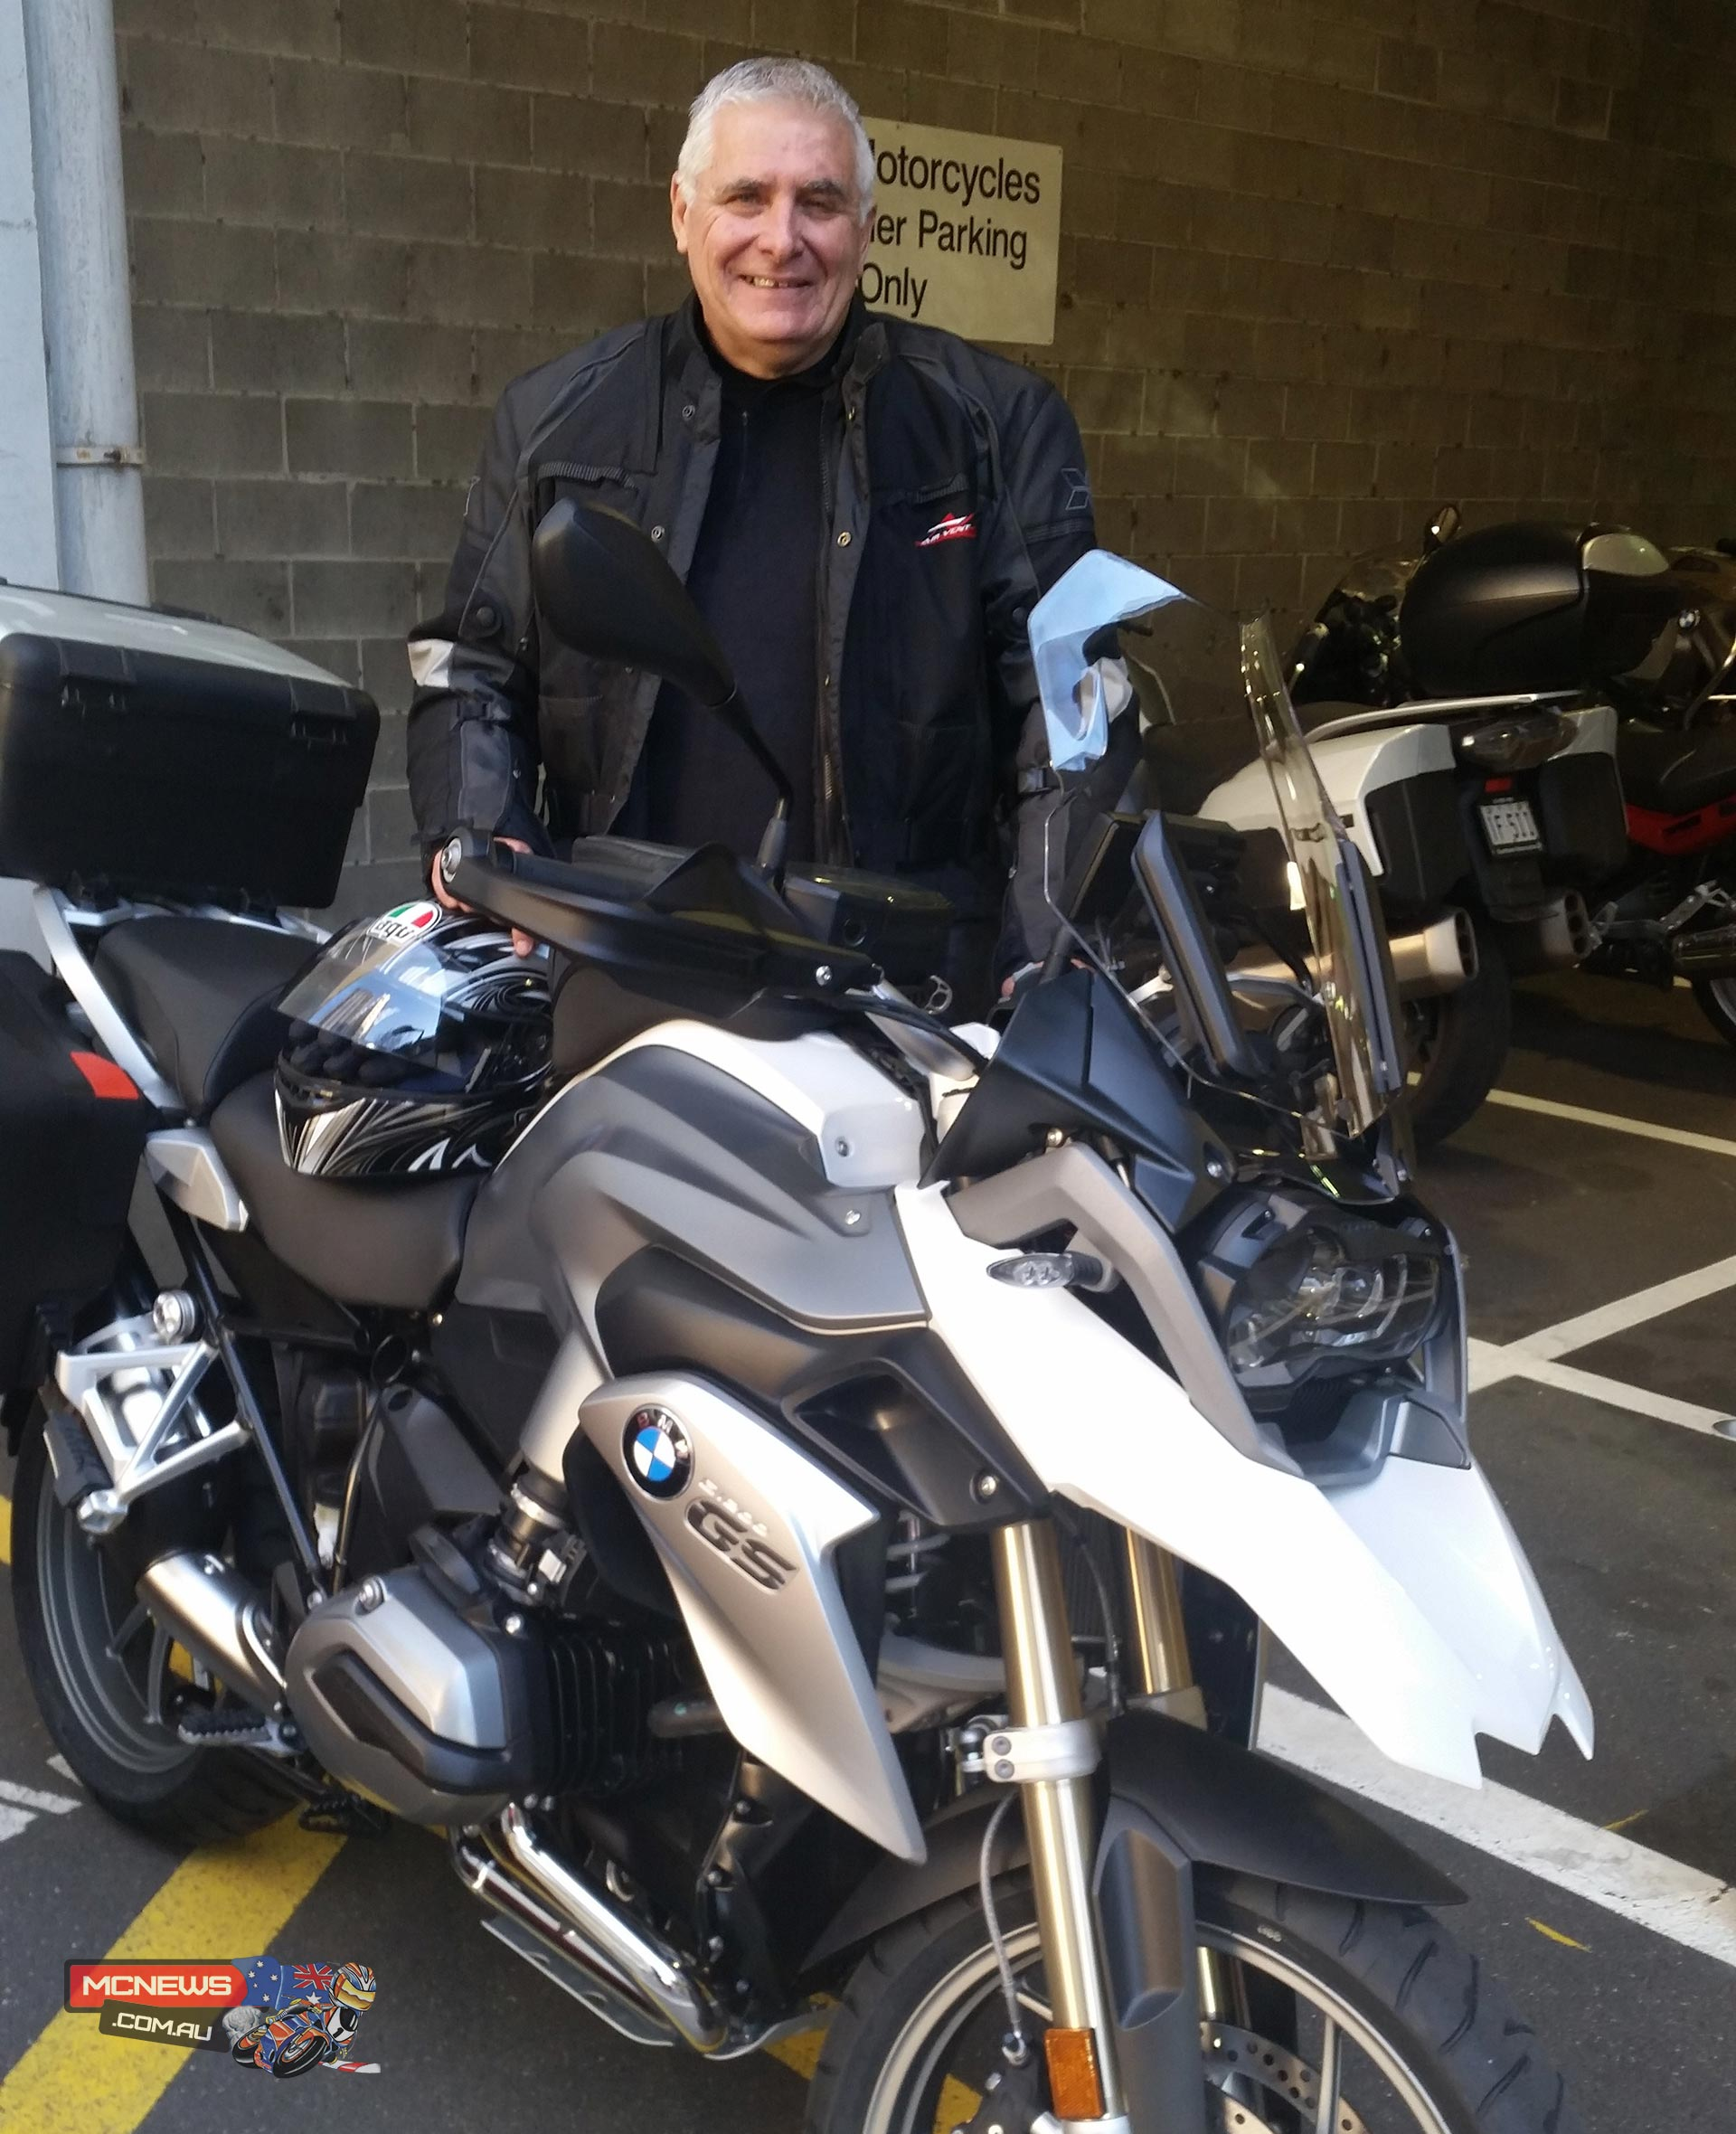 Dave Bancell picking up his new BMR R 1200 GS